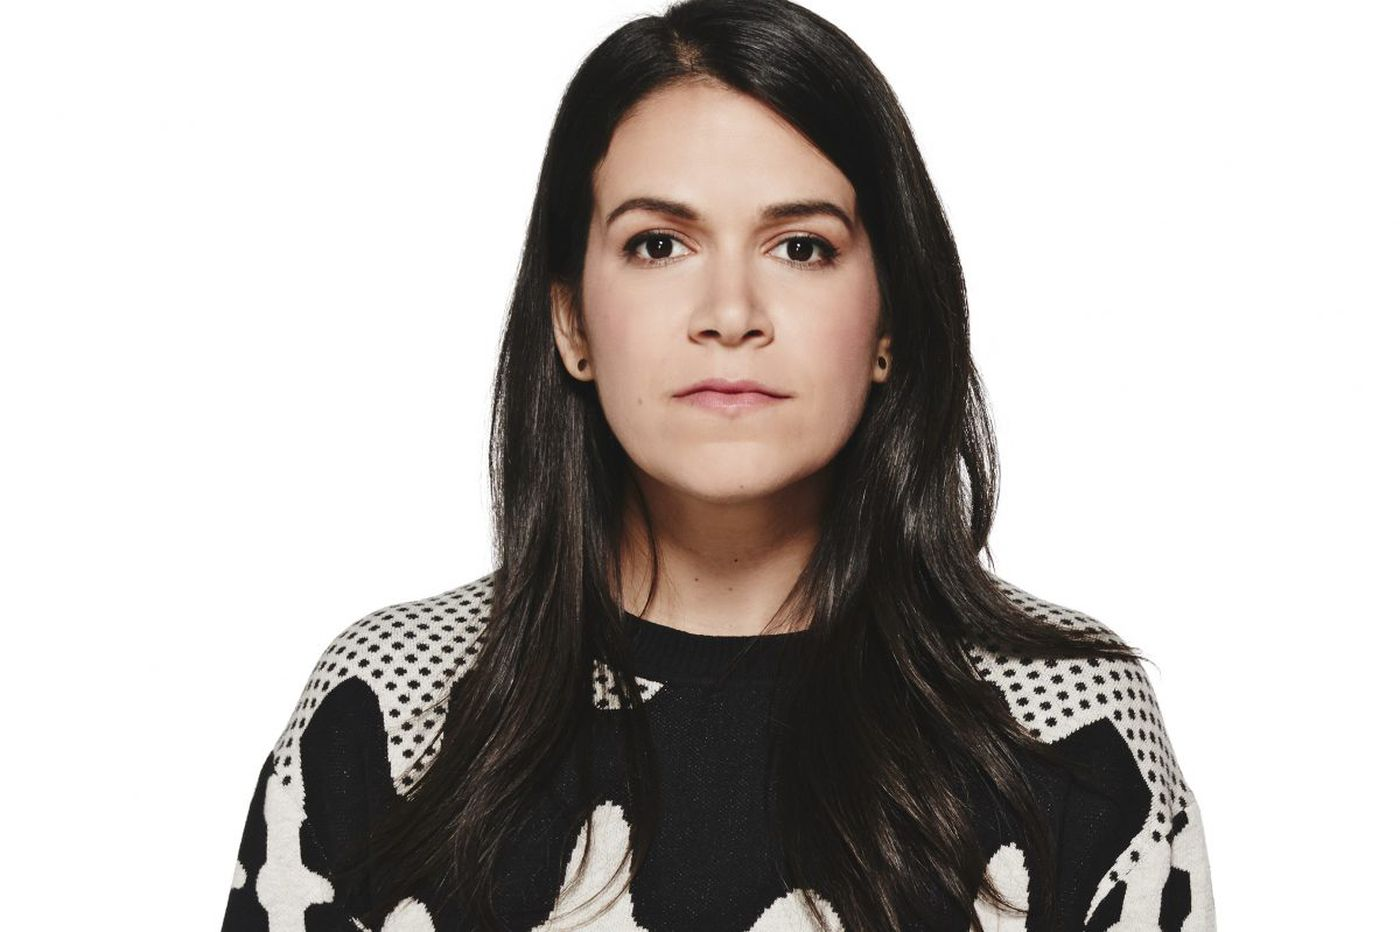 Wayne's Abbi Jacobson to voice lead in 'The Simpsons' creator's new Netflix show